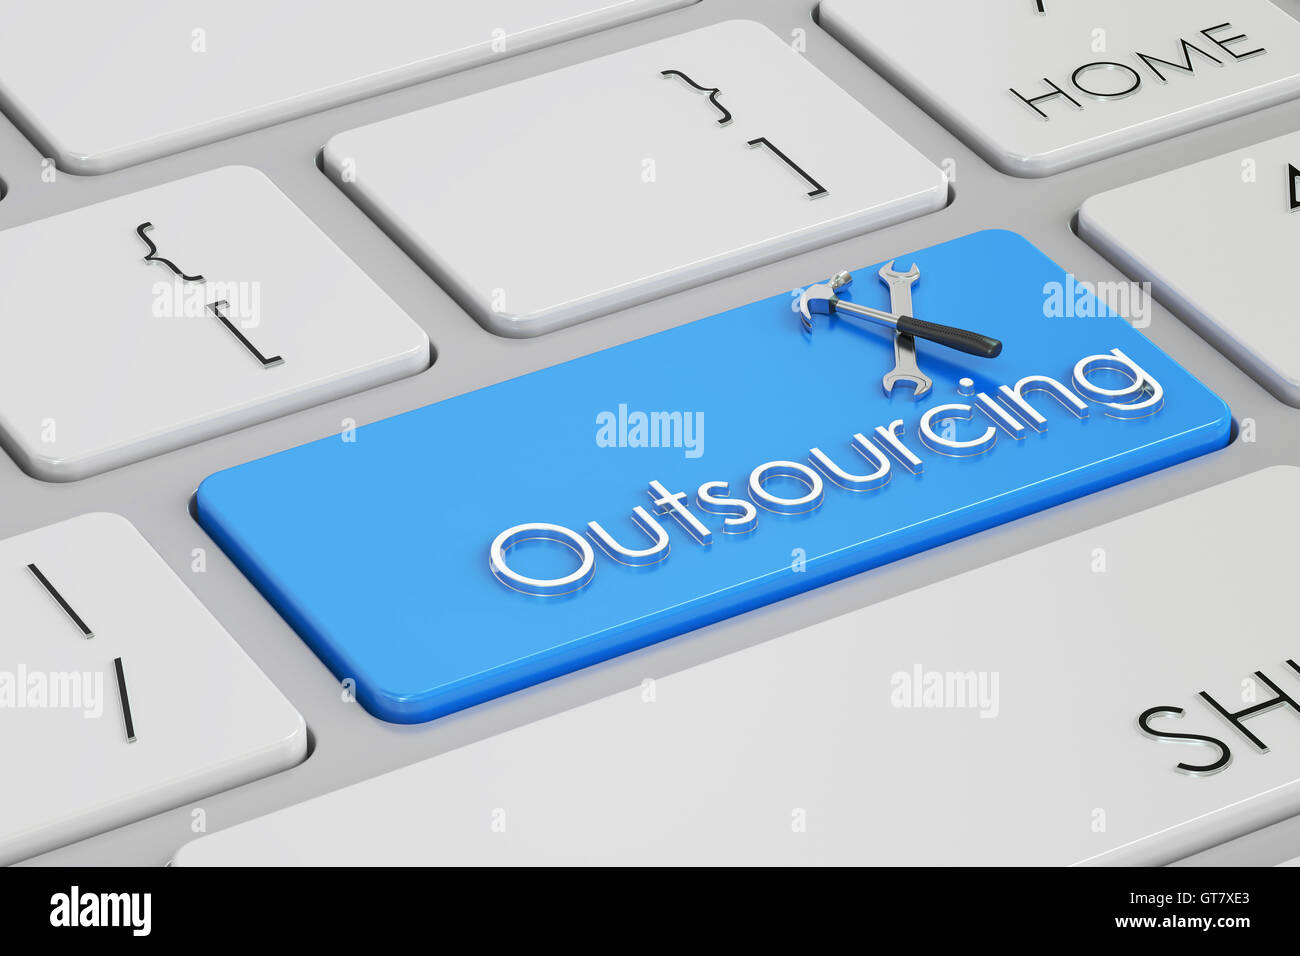 outsourcing concept on keyboard, 3D rendering - Stock Image